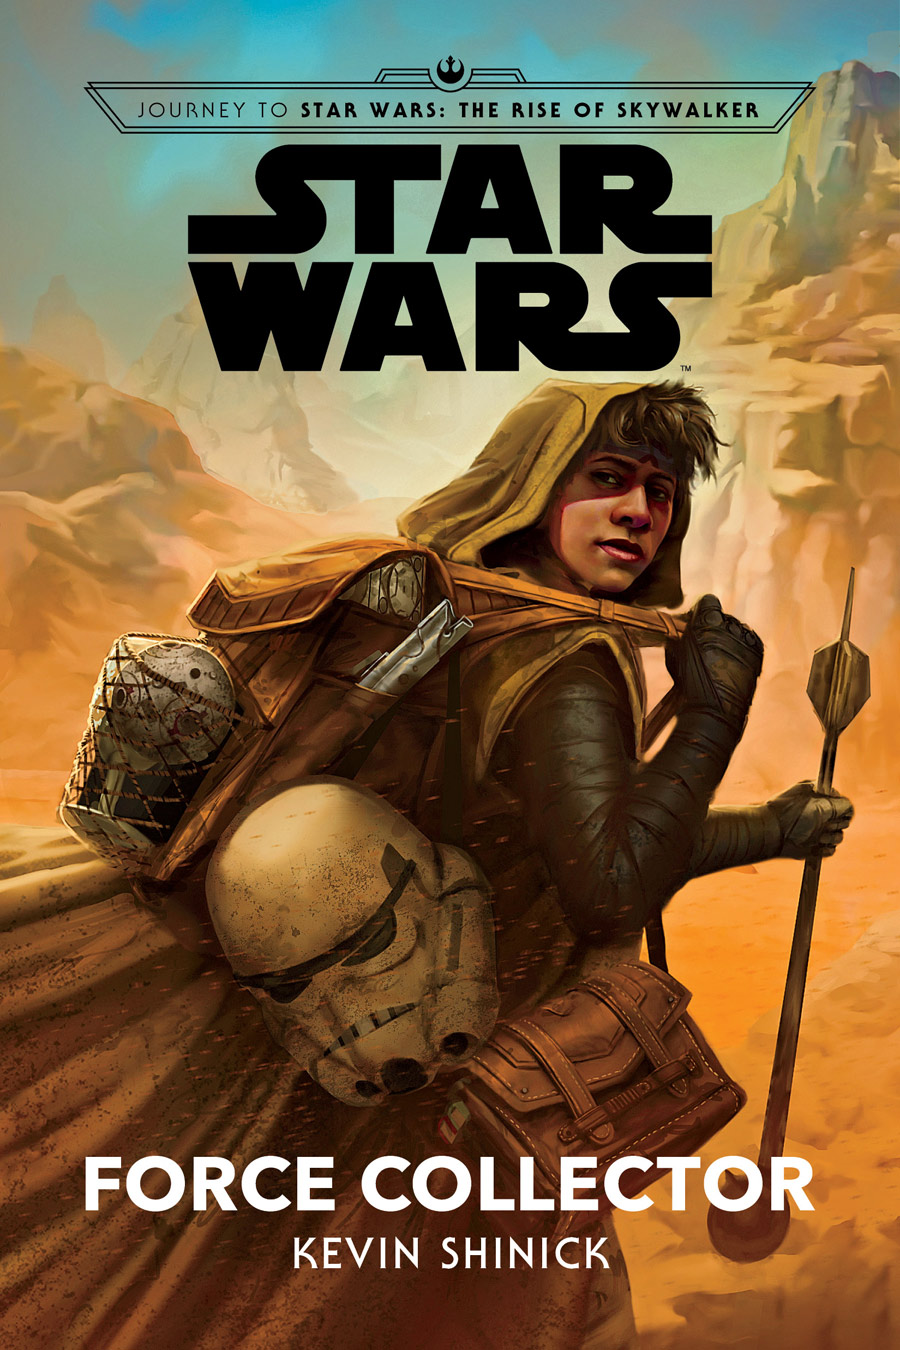 Journey to Star Wars: The Rise of Skywalker: Force Collector by Kevin Shinick cover